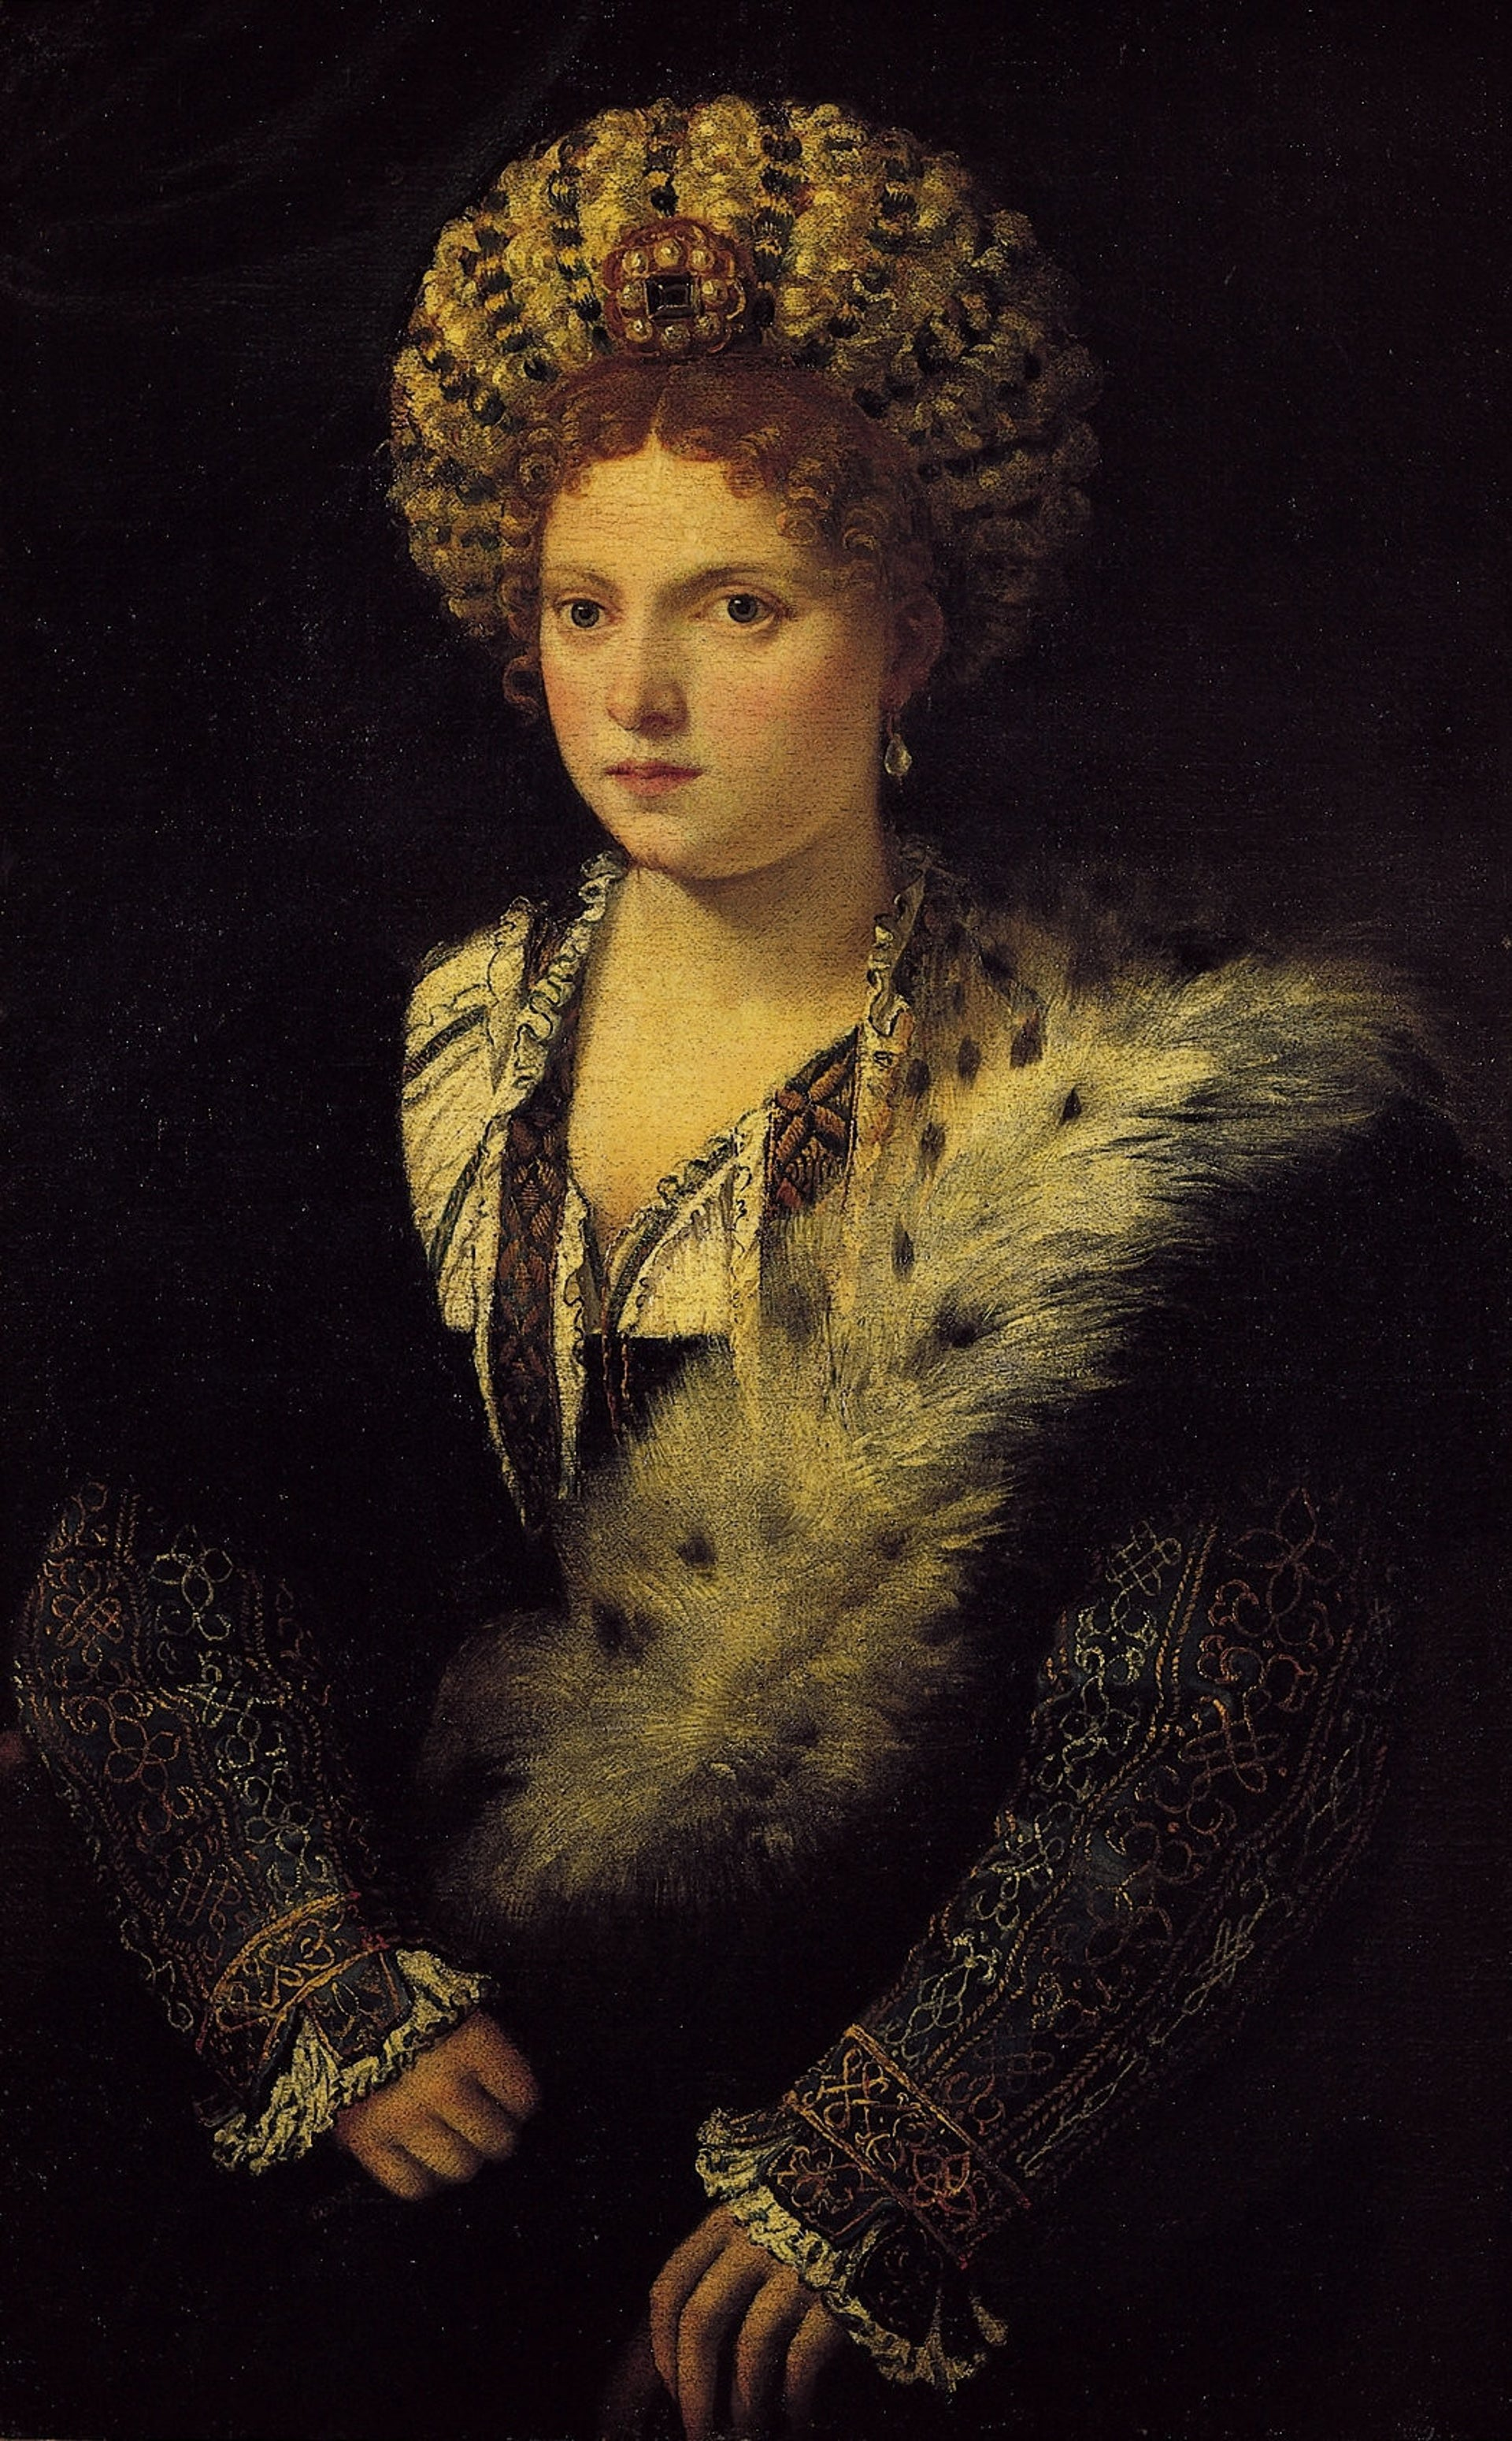 Portrait of Isabella d'Este by Titian.